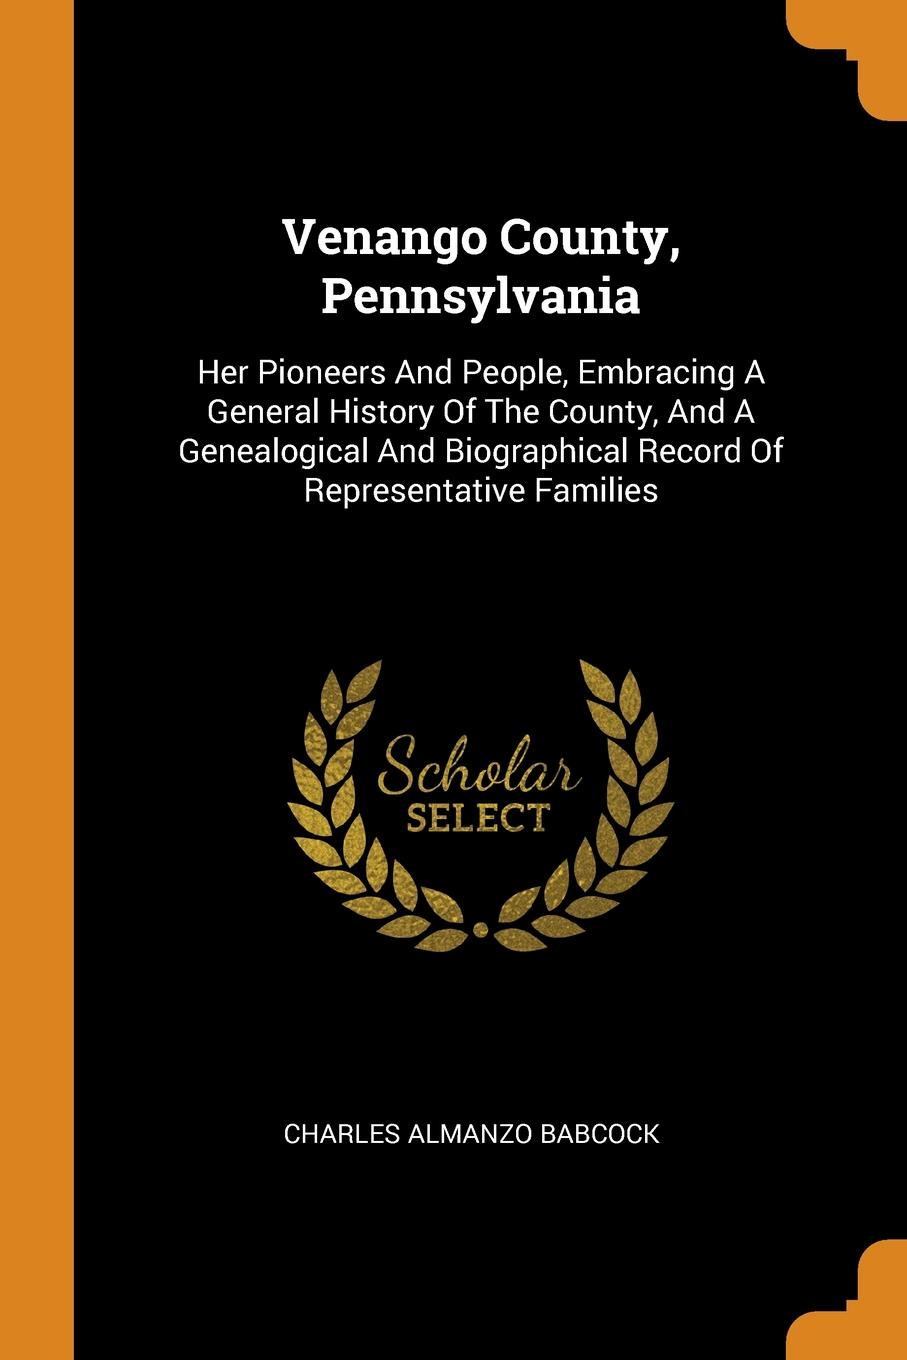 Venango County, Pennsylvania. Her Pioneers And People, Embracing A General History Of The County, And A Genealogical And Biographical Record Of Representative Families